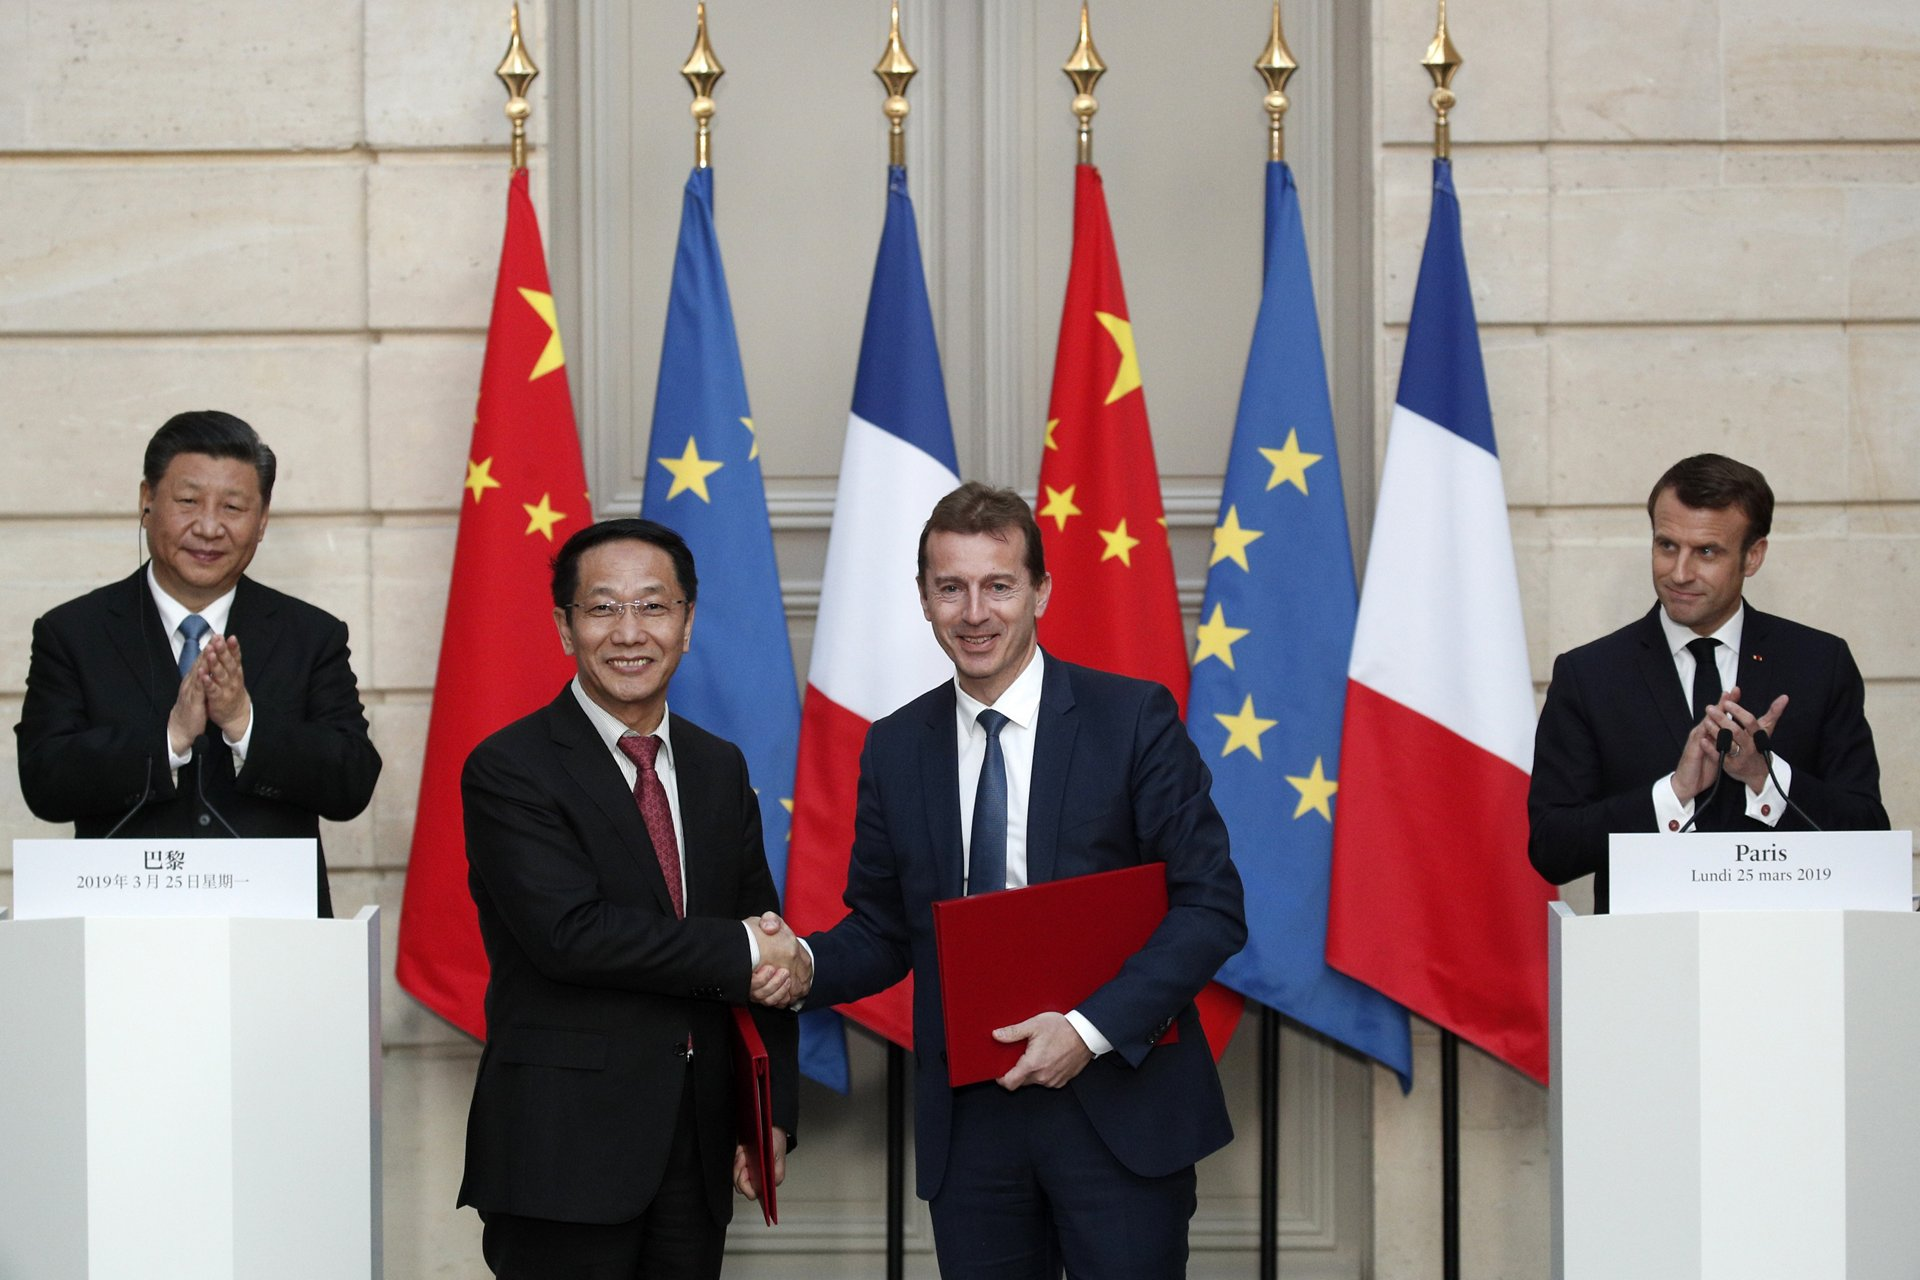 French President Emmanuel Macron (R) and Chinese President Xi Jinping (L) applaud as President of Airbus's commercial aircraft business, Guillaume Faury (2nd R) and Chairman of China Aviation Supplies Co (CASC) Jia Baojun (2nd L) shake hands during an agreement signing ceremony  at the Elysee Palace in Paris on March 25, 2019, as part of a state visit. - The Chinese president is on a  three-day state visit to France where he is expected to sign a series of bilateral and economic deals on energy, the food industry, transport and other sectors. (Photo by Yoan VALAT / POOL / AFP)